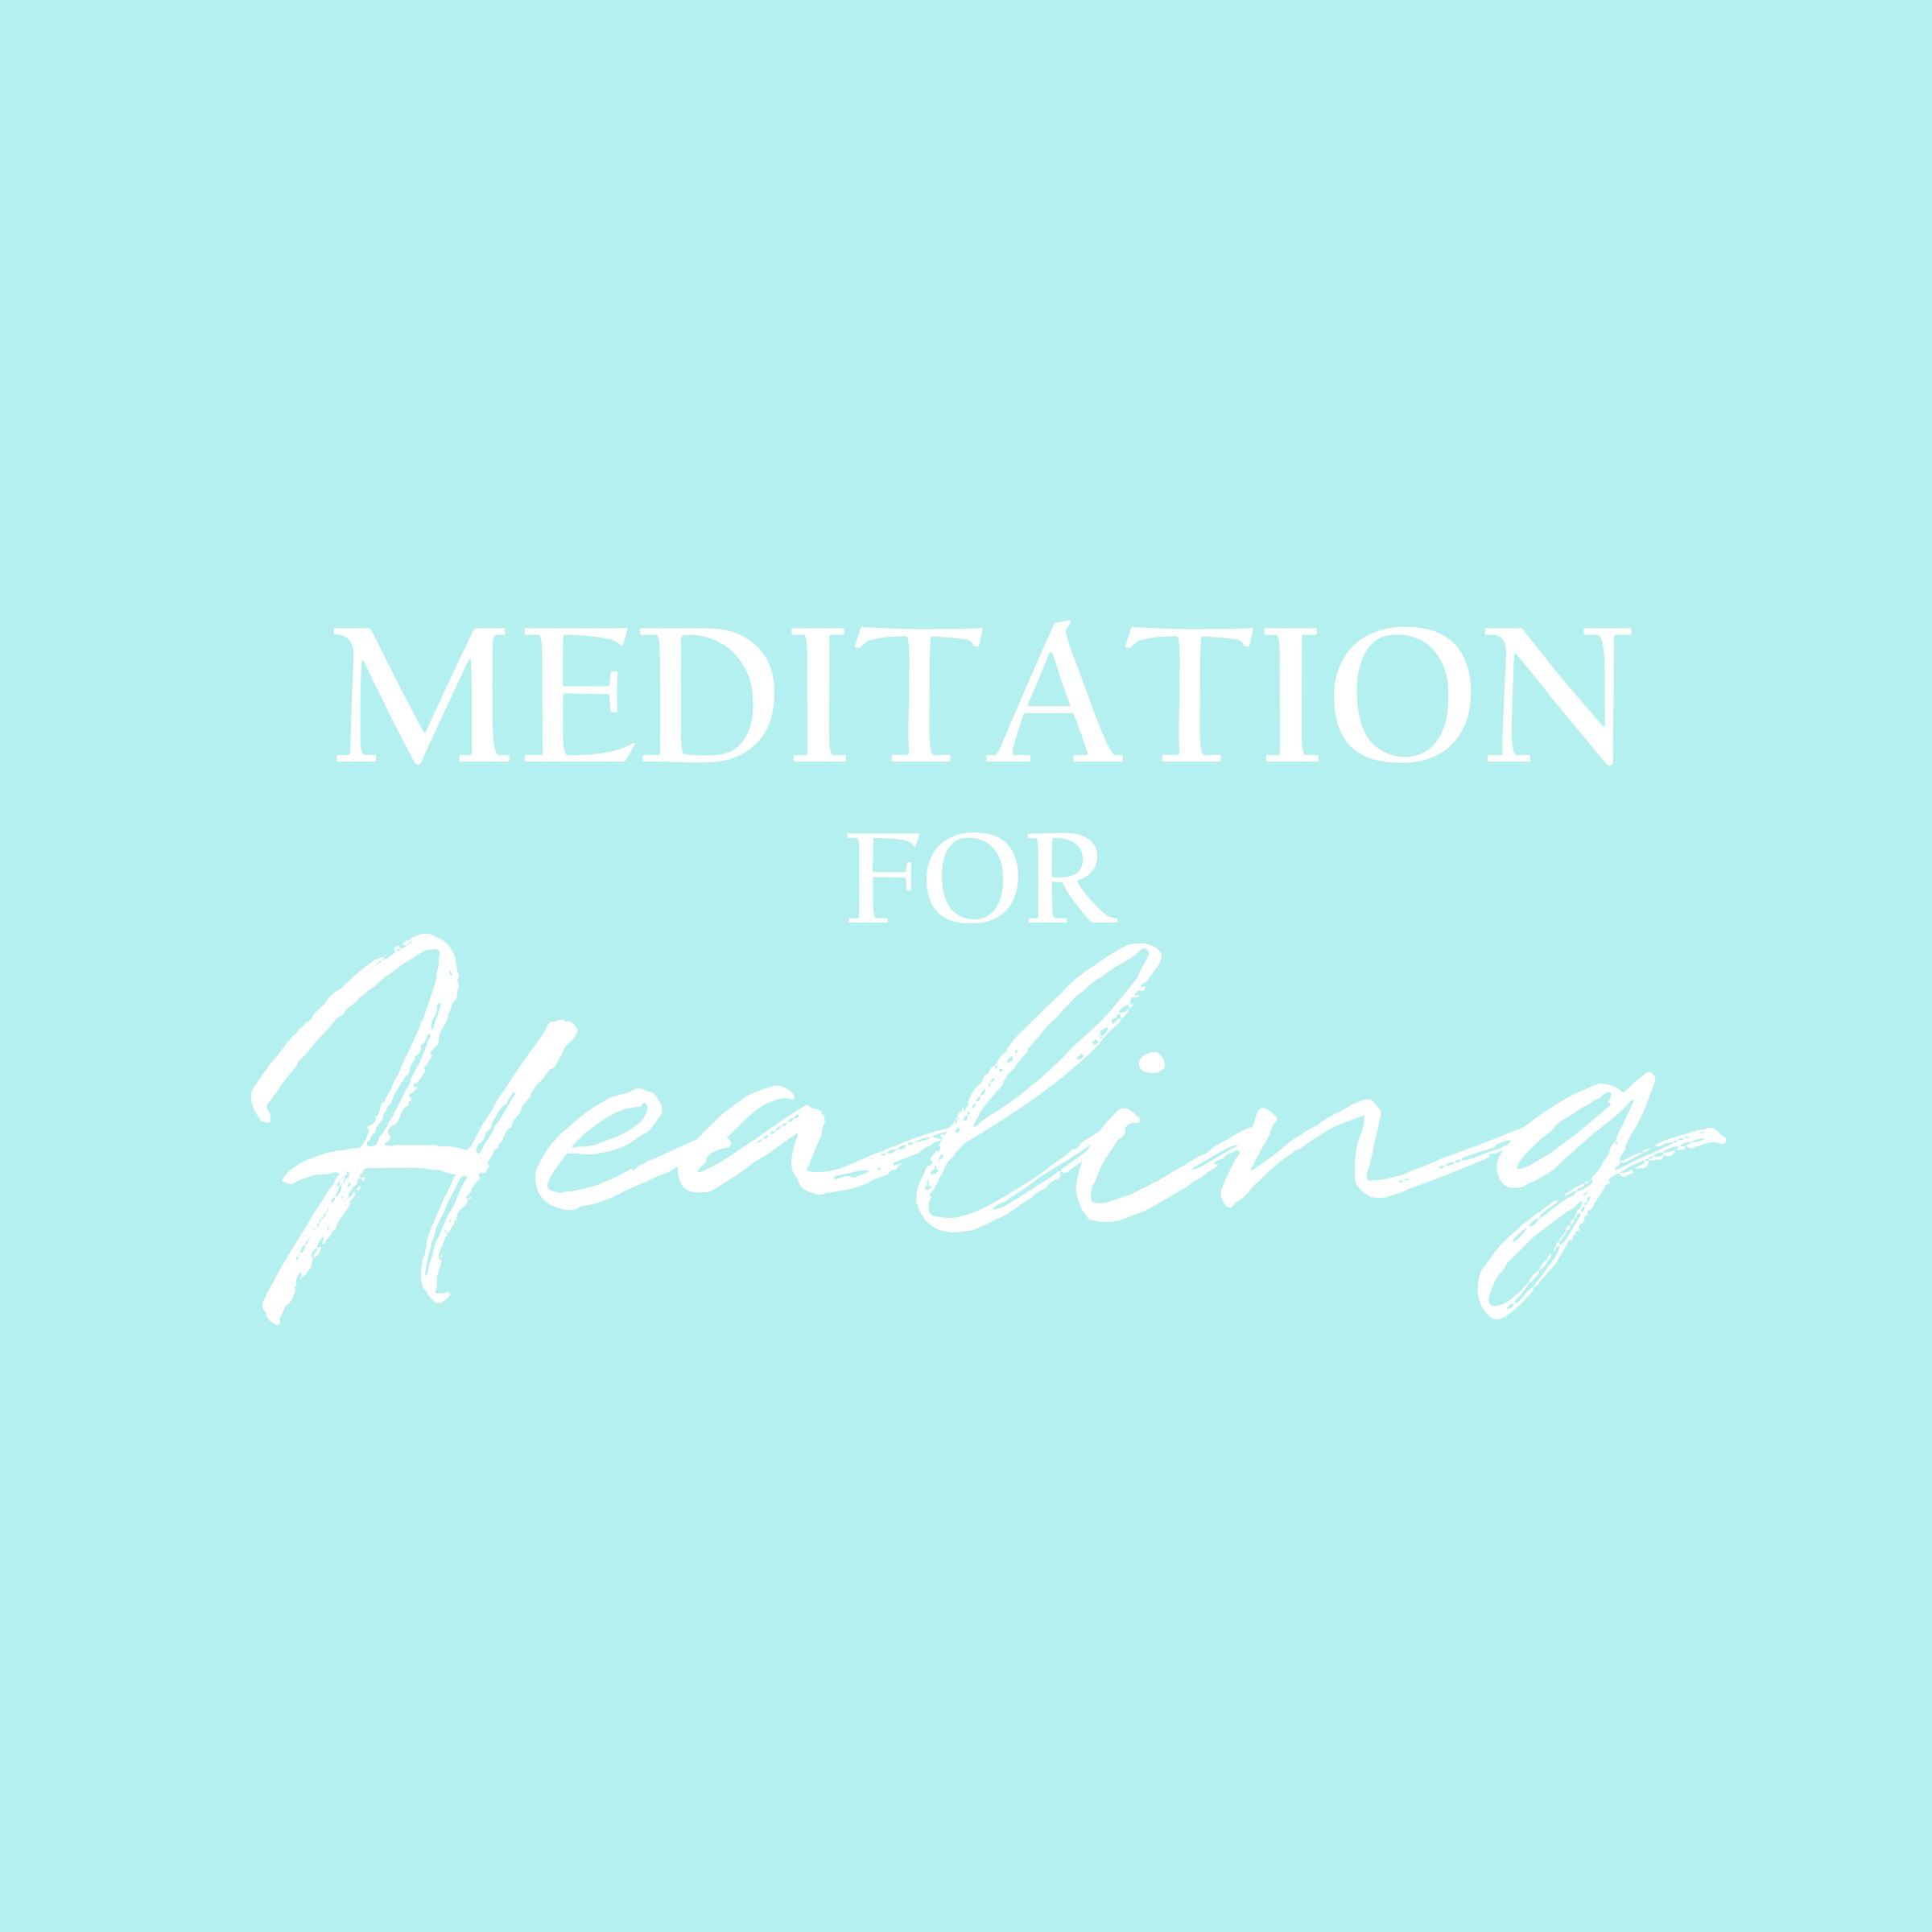 Meditation for Healing Karen Palmer